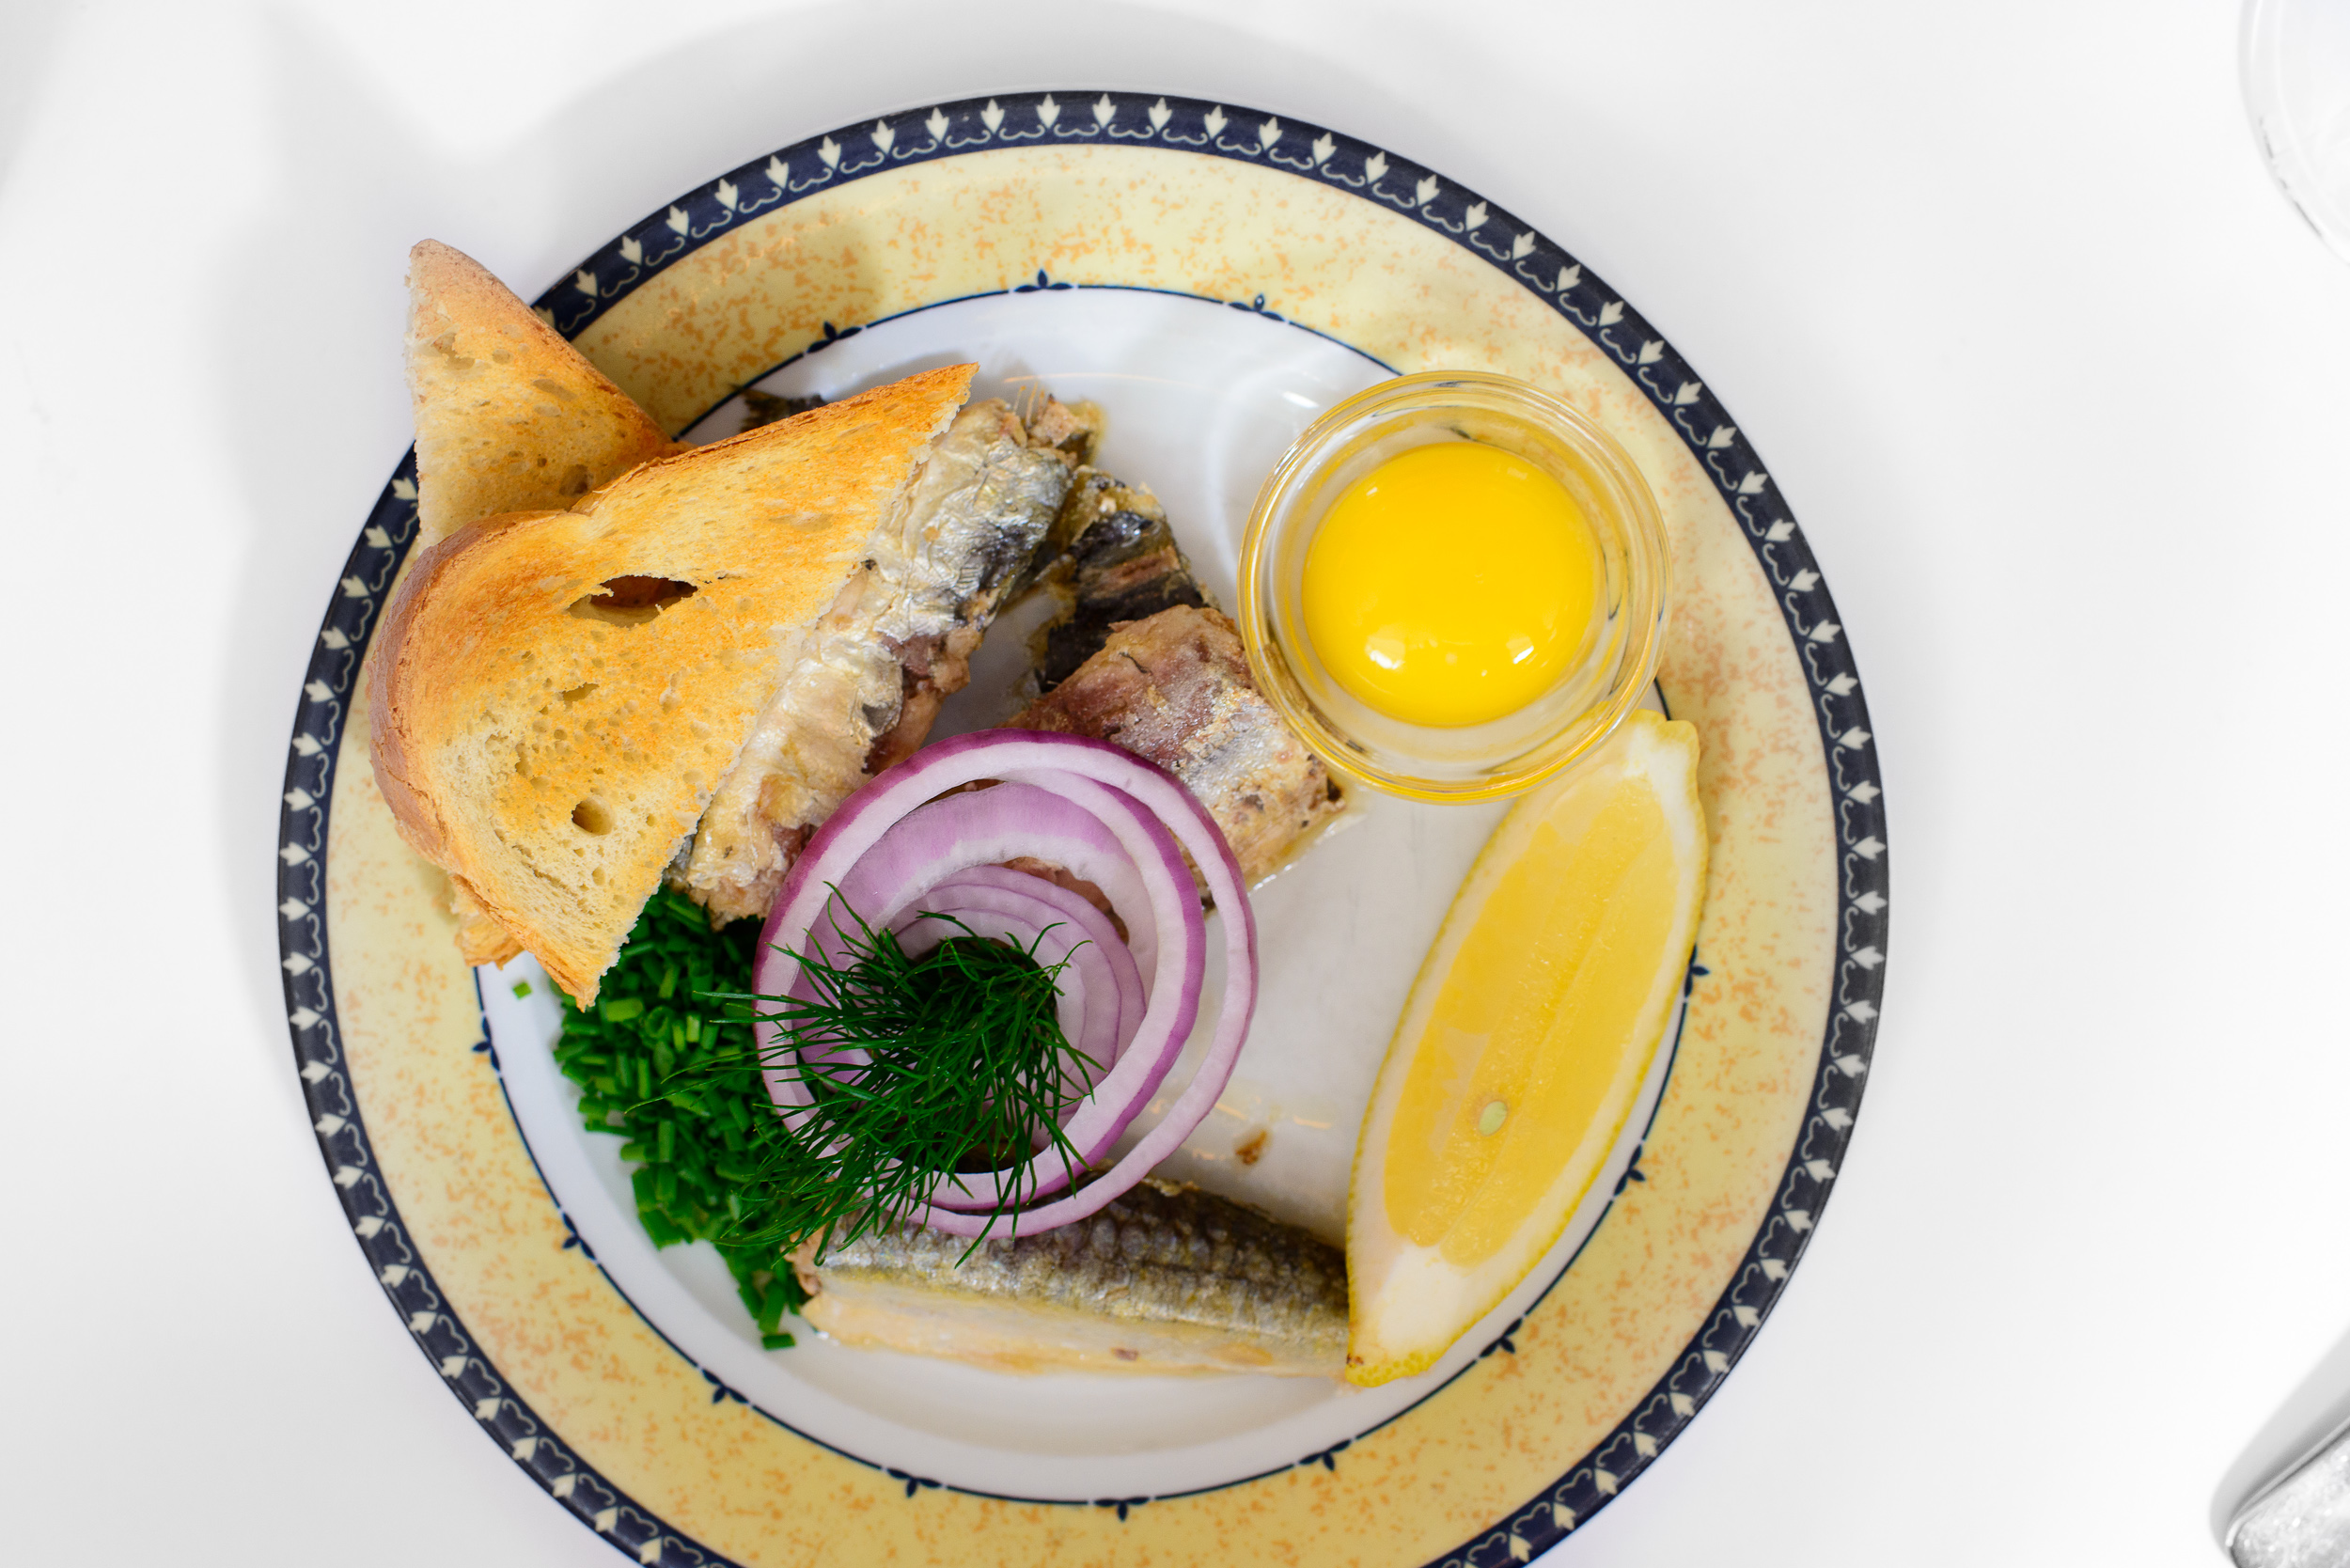 Sardines, raw egg yolk, onions and toast